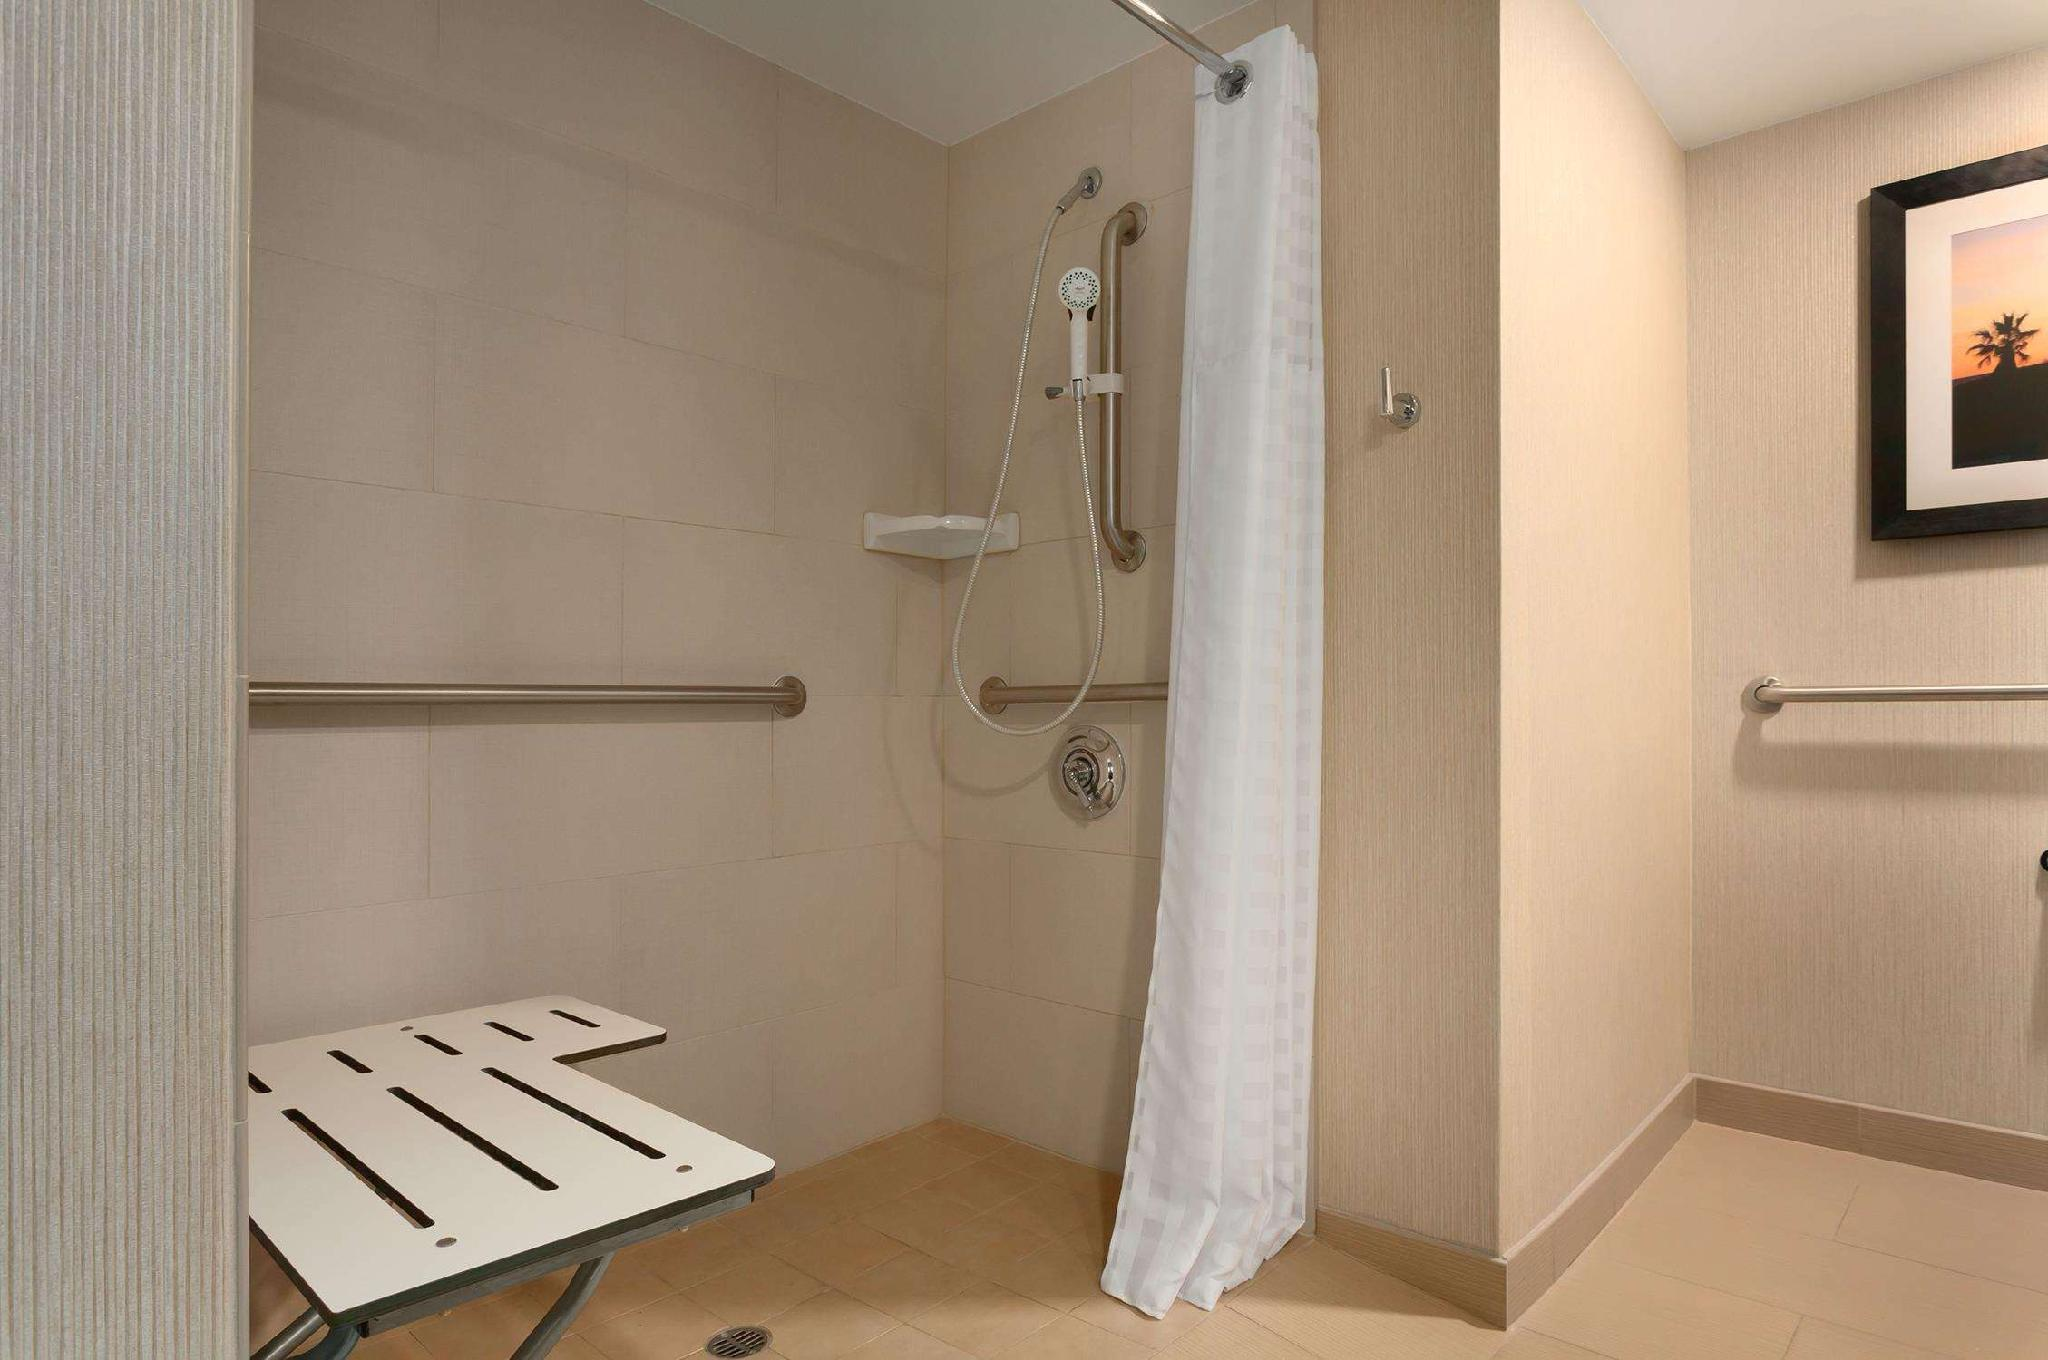 1 King Ocean View Accessible Roll in Shower